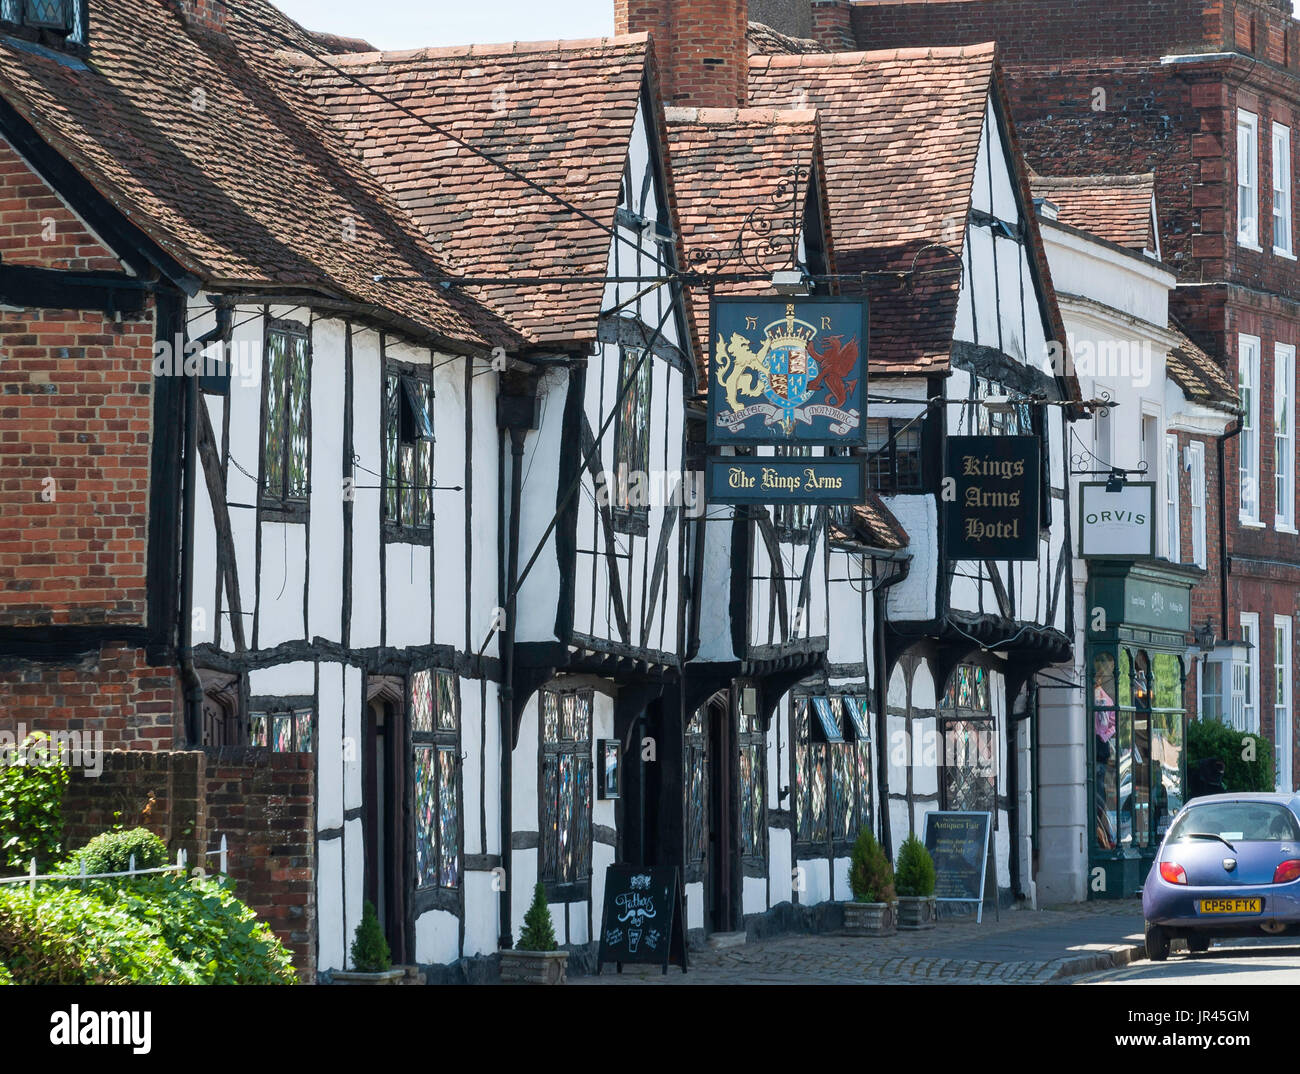 15th century The King's Arms Hotel, High Street, Old Amersham, Buckinghamshire, England, United Kingdom Stock Photo